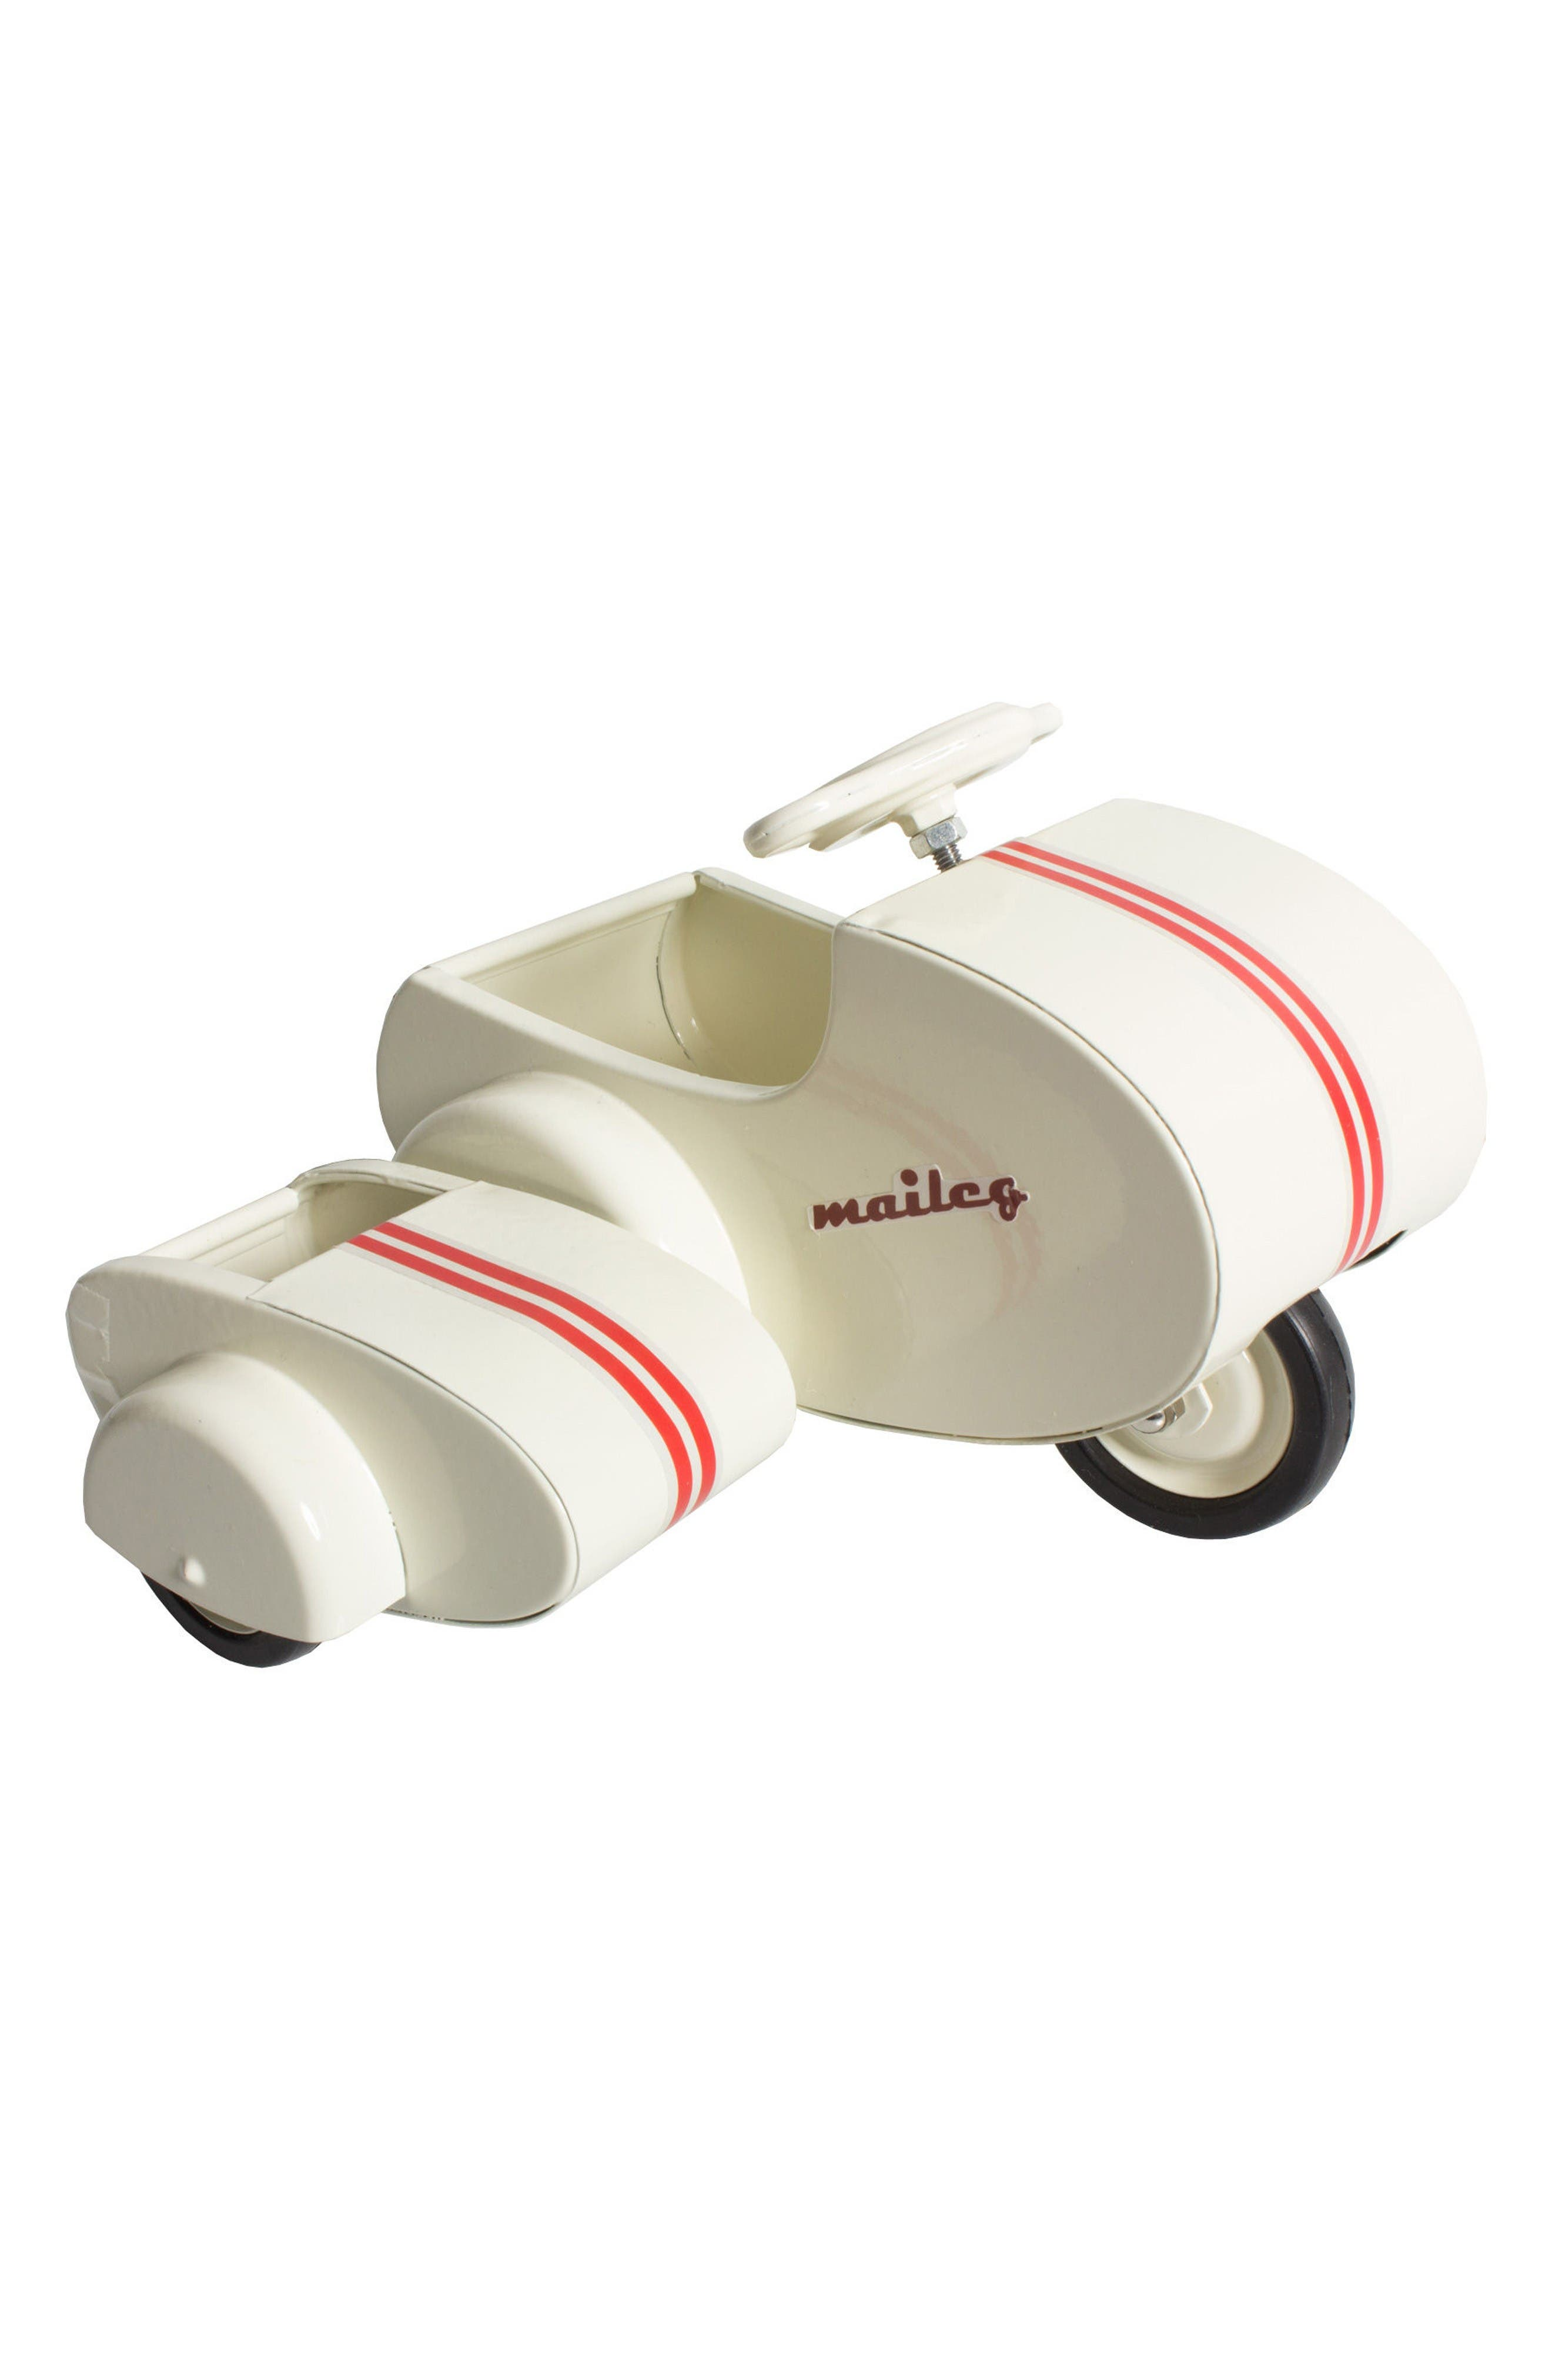 Maileg Mini Mouse Scooter Toy with Side Car